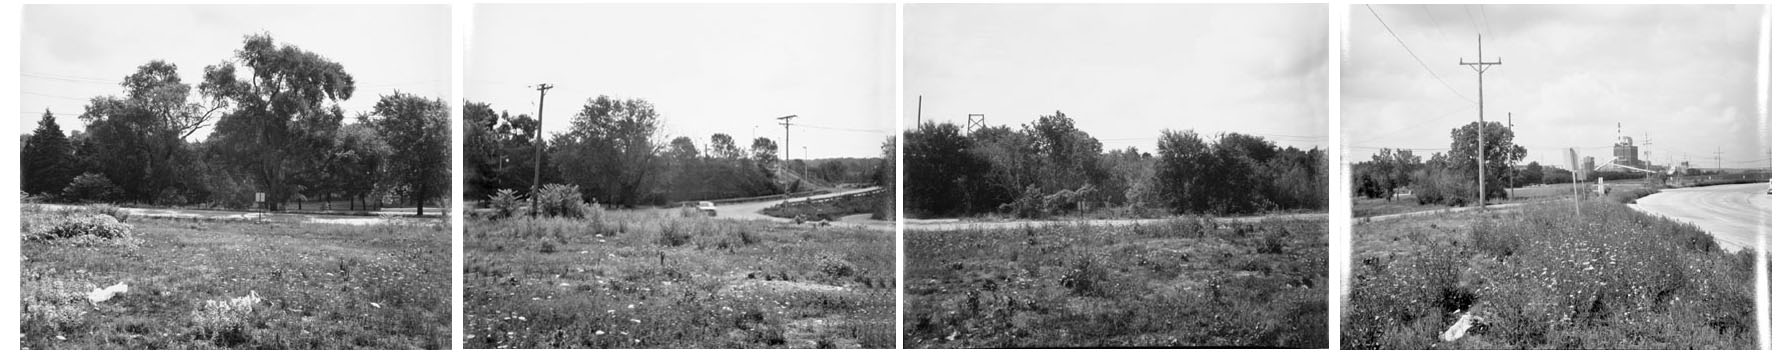 Intersection of U.S. Route 6 and Brandon Road Near Joliet, from Changing Chicago Project